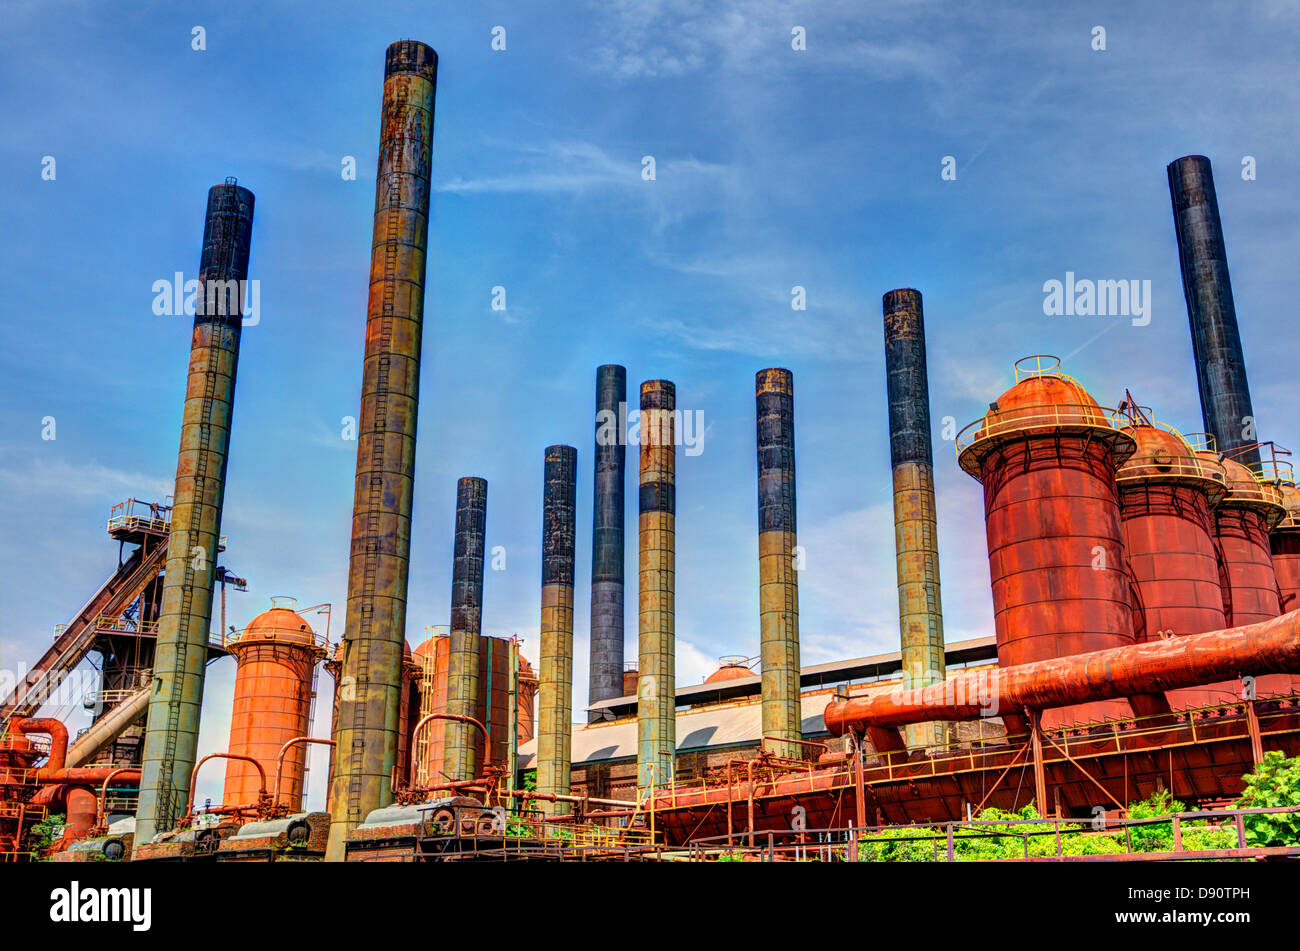 Smoke stacks of an old factory. - Stock Image